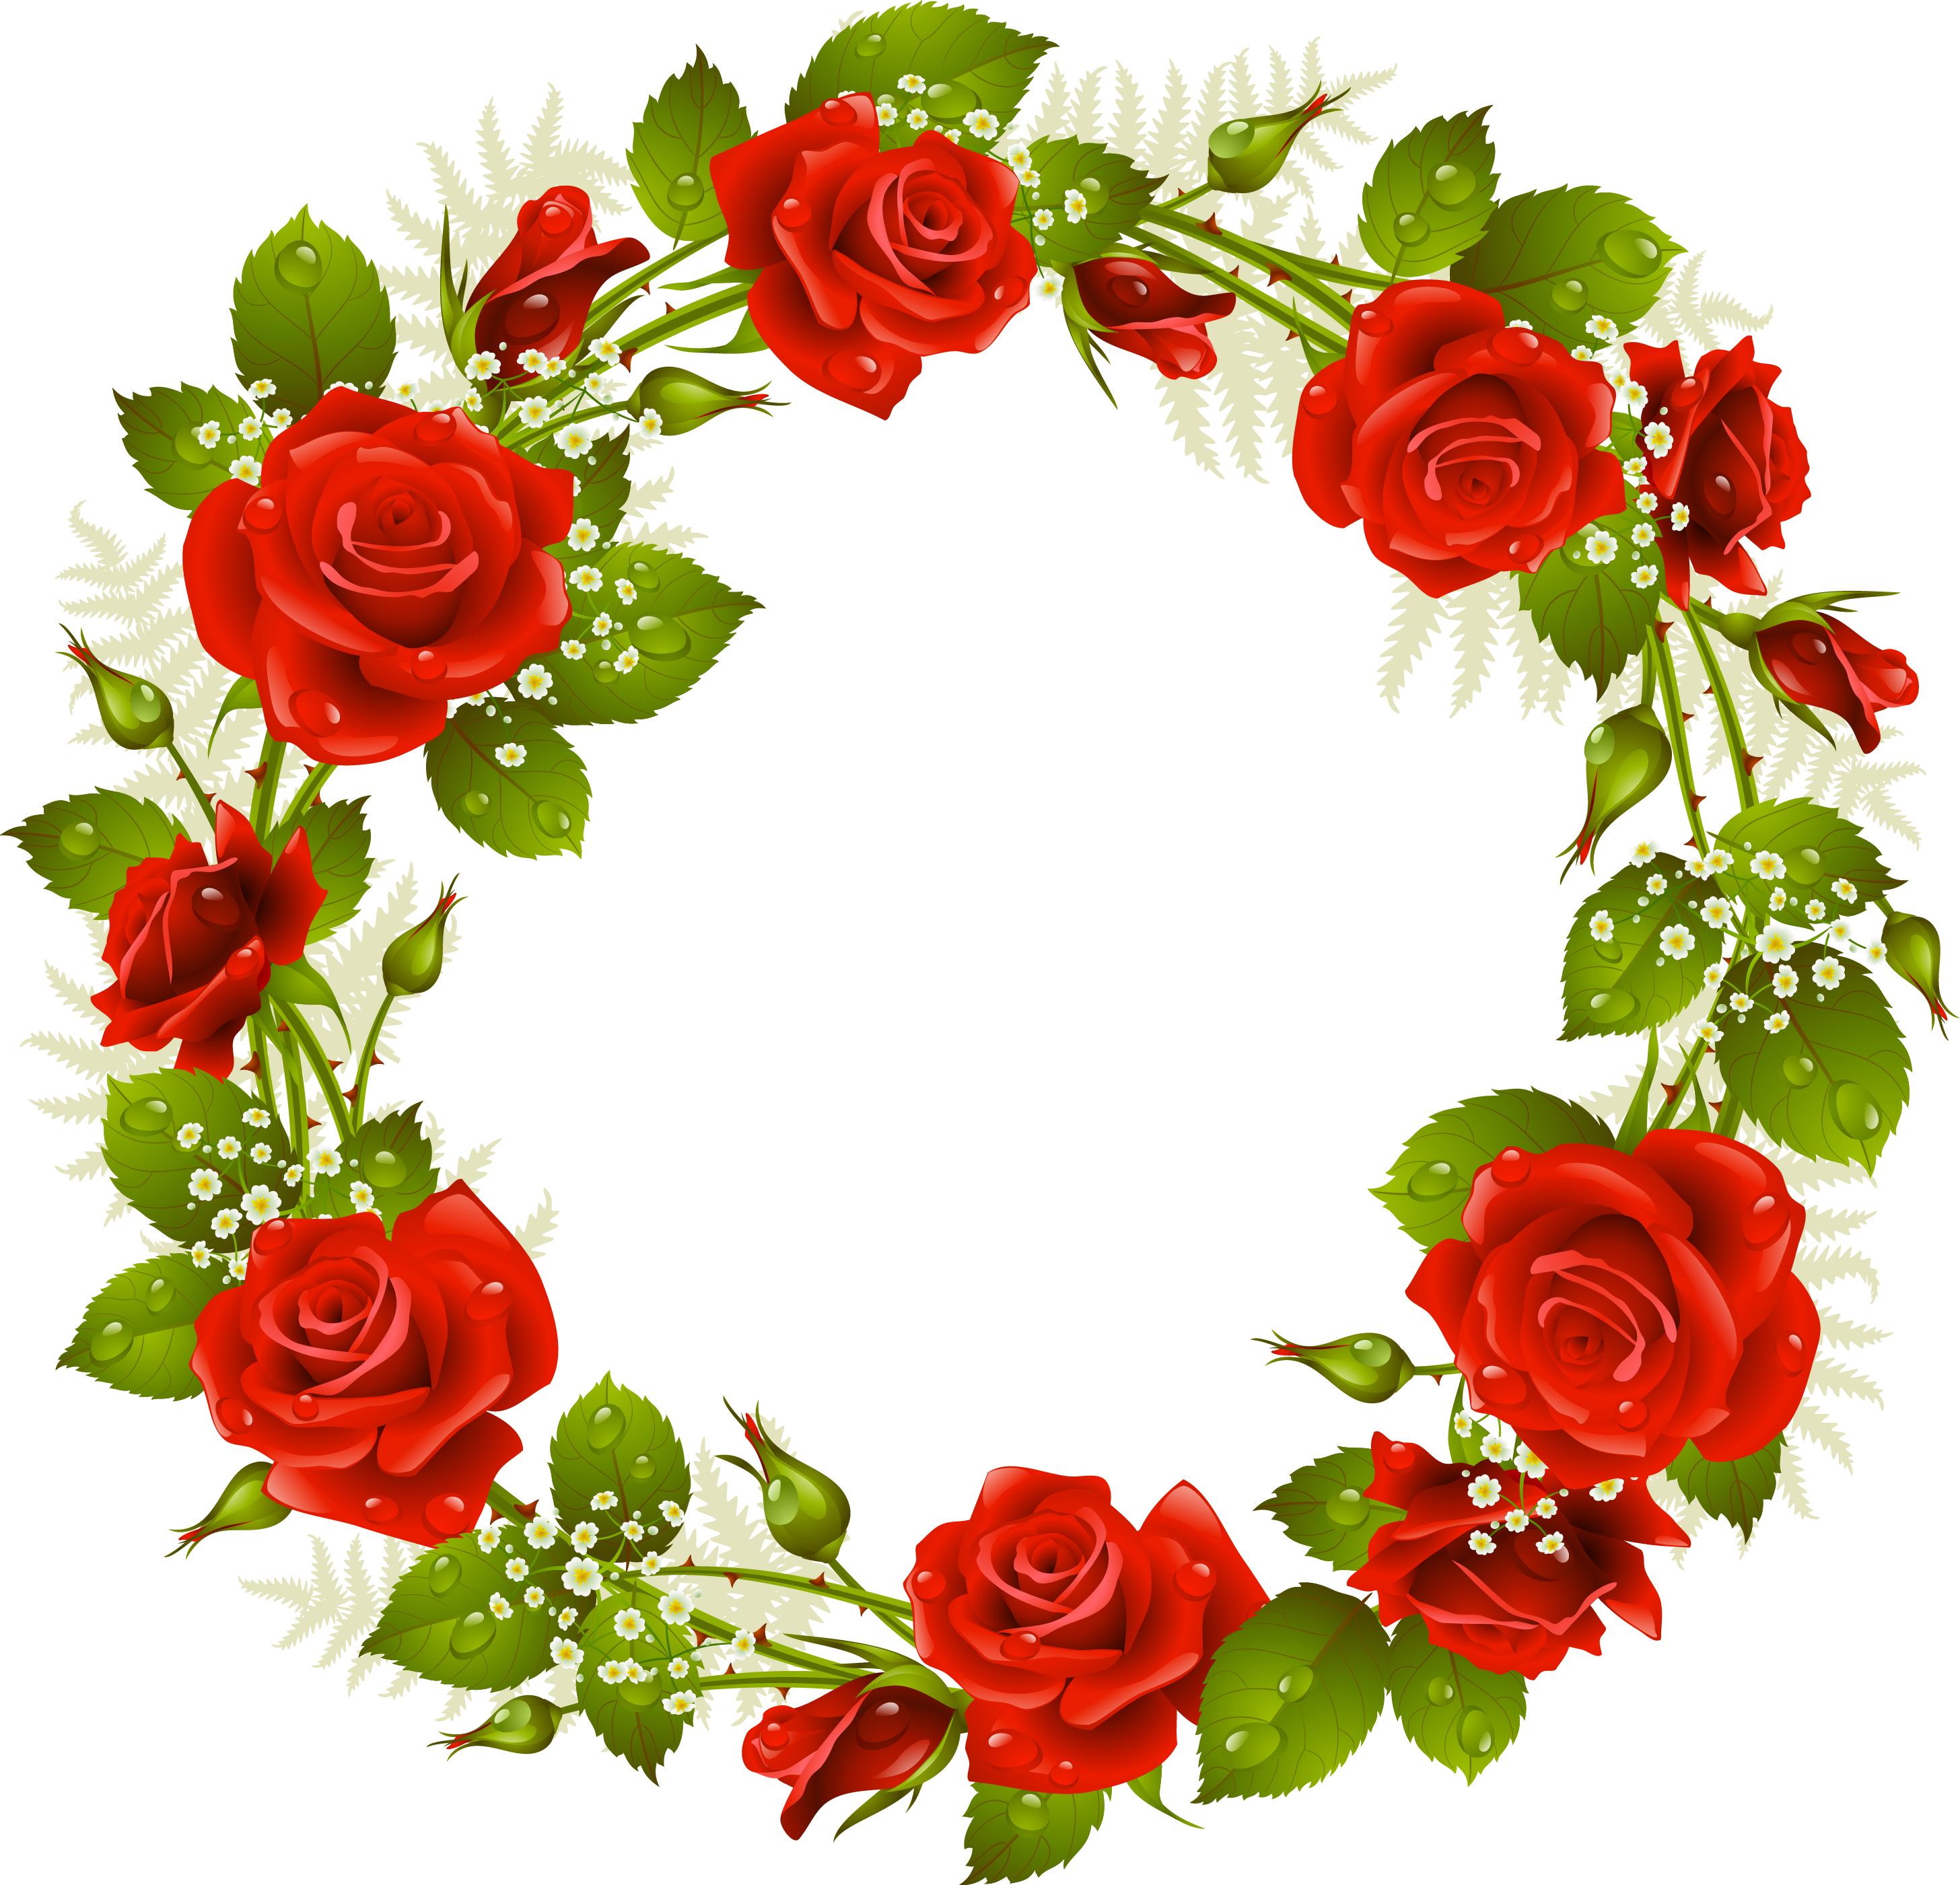 Pin by marina on. Strawberries clipart wreath